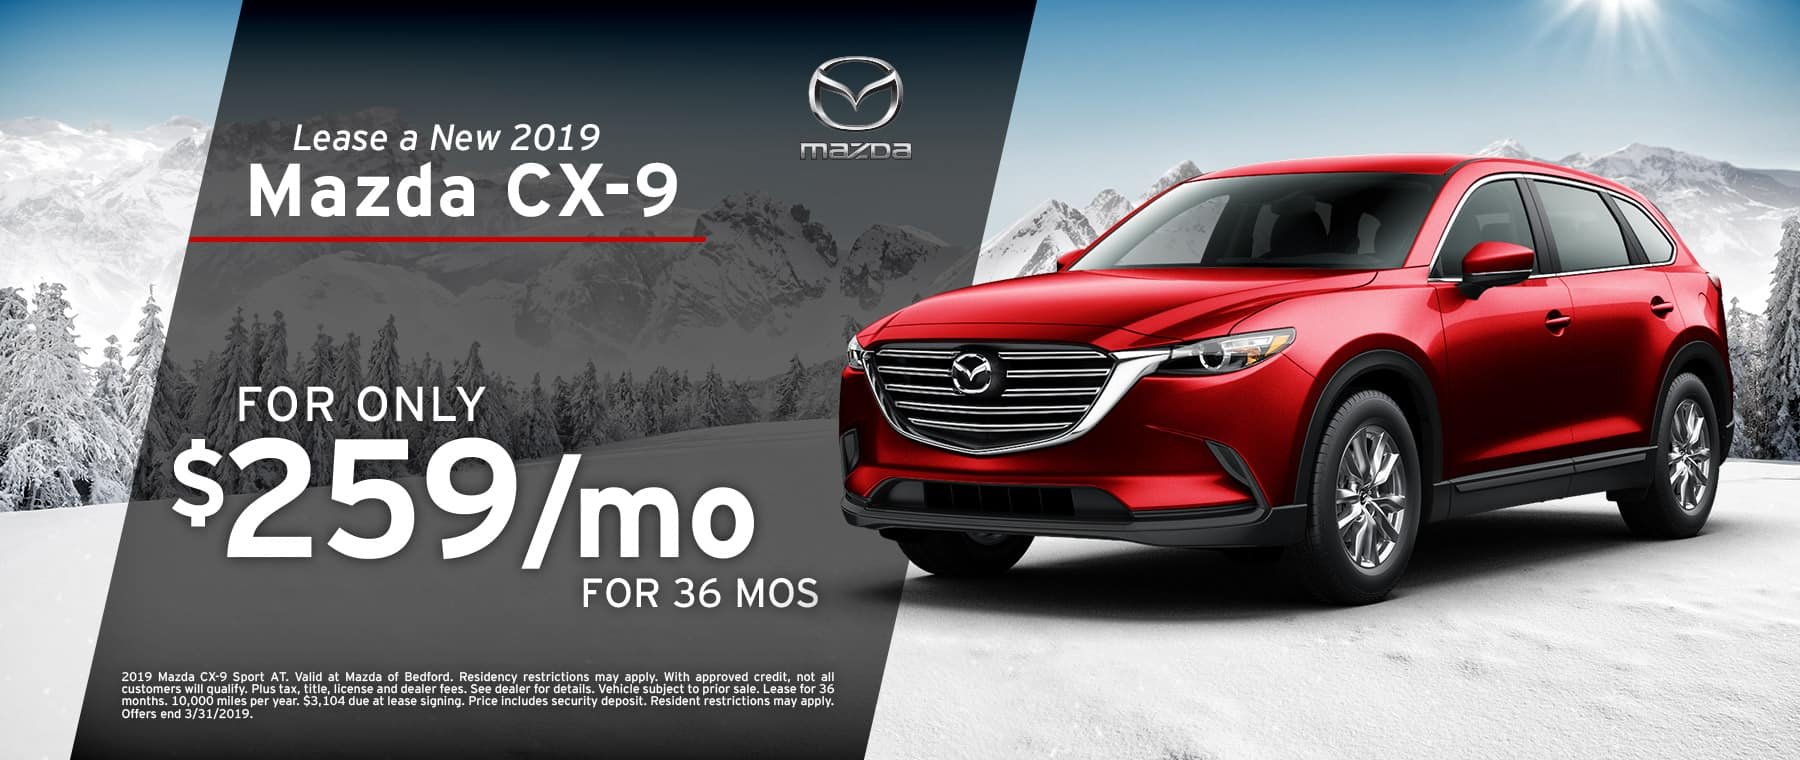 Save when you lease a 2019 Mazda CX-9 at Mazda of Bedford in Ohio